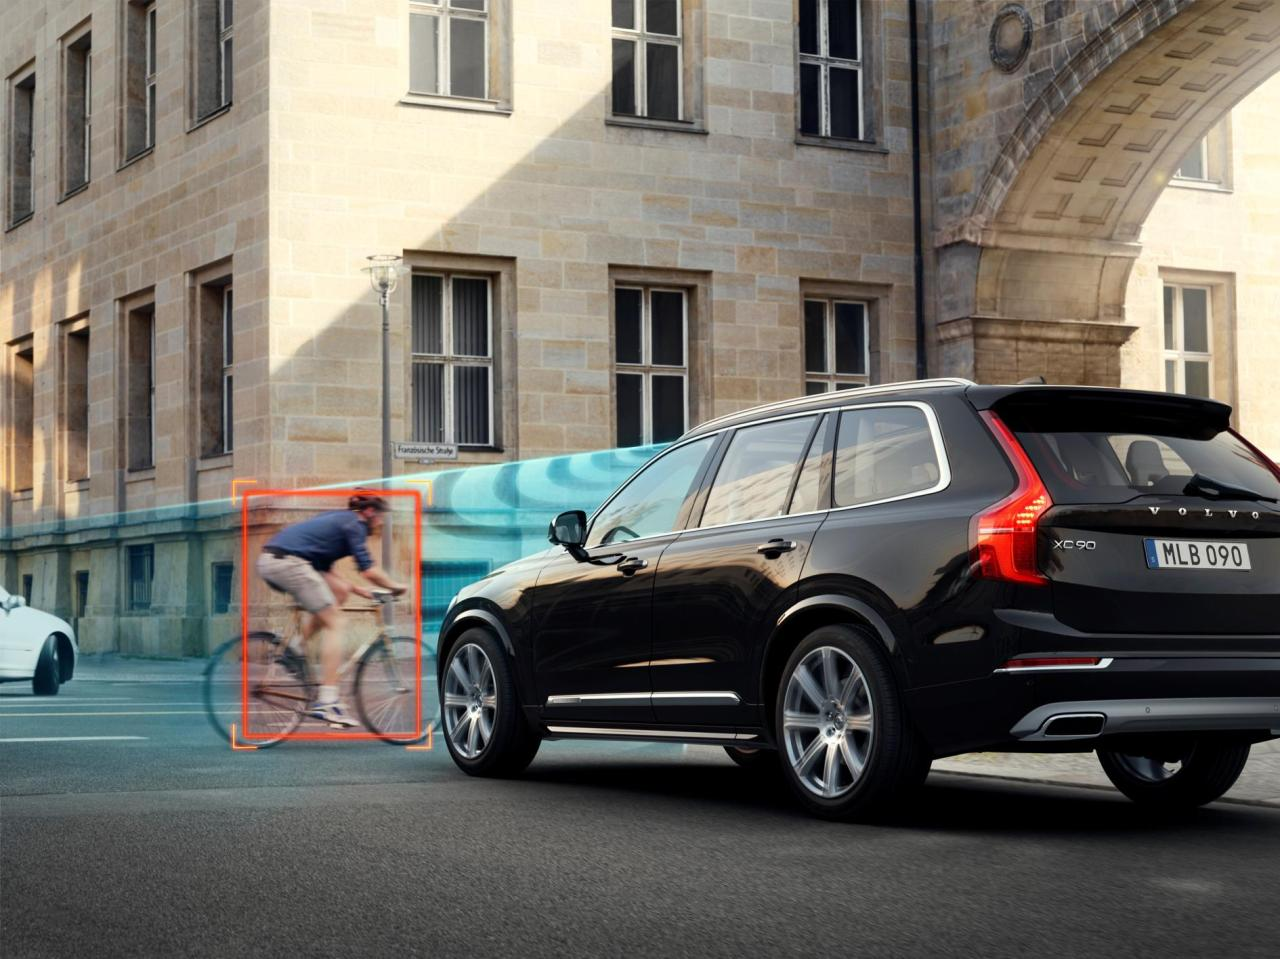 The 2014 Volvo XC90 features the City Safety system.